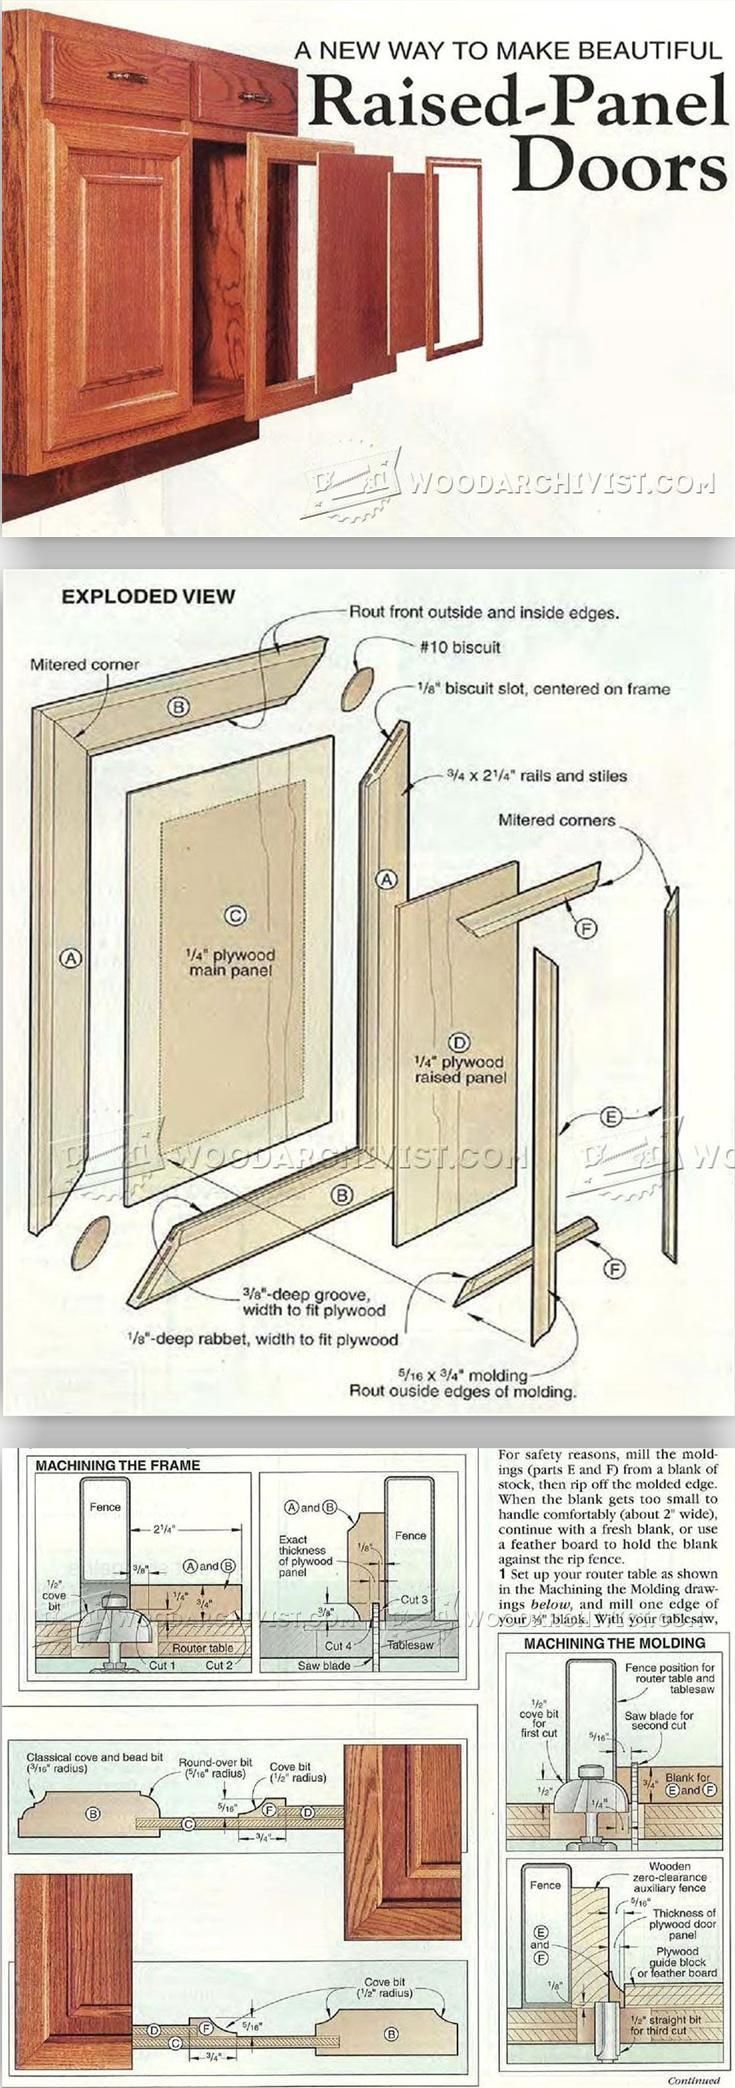 Cabinet Door Diagram Wiring For Car Stereo With Amplifier Making Raised Panel Doors Construction And Techniques